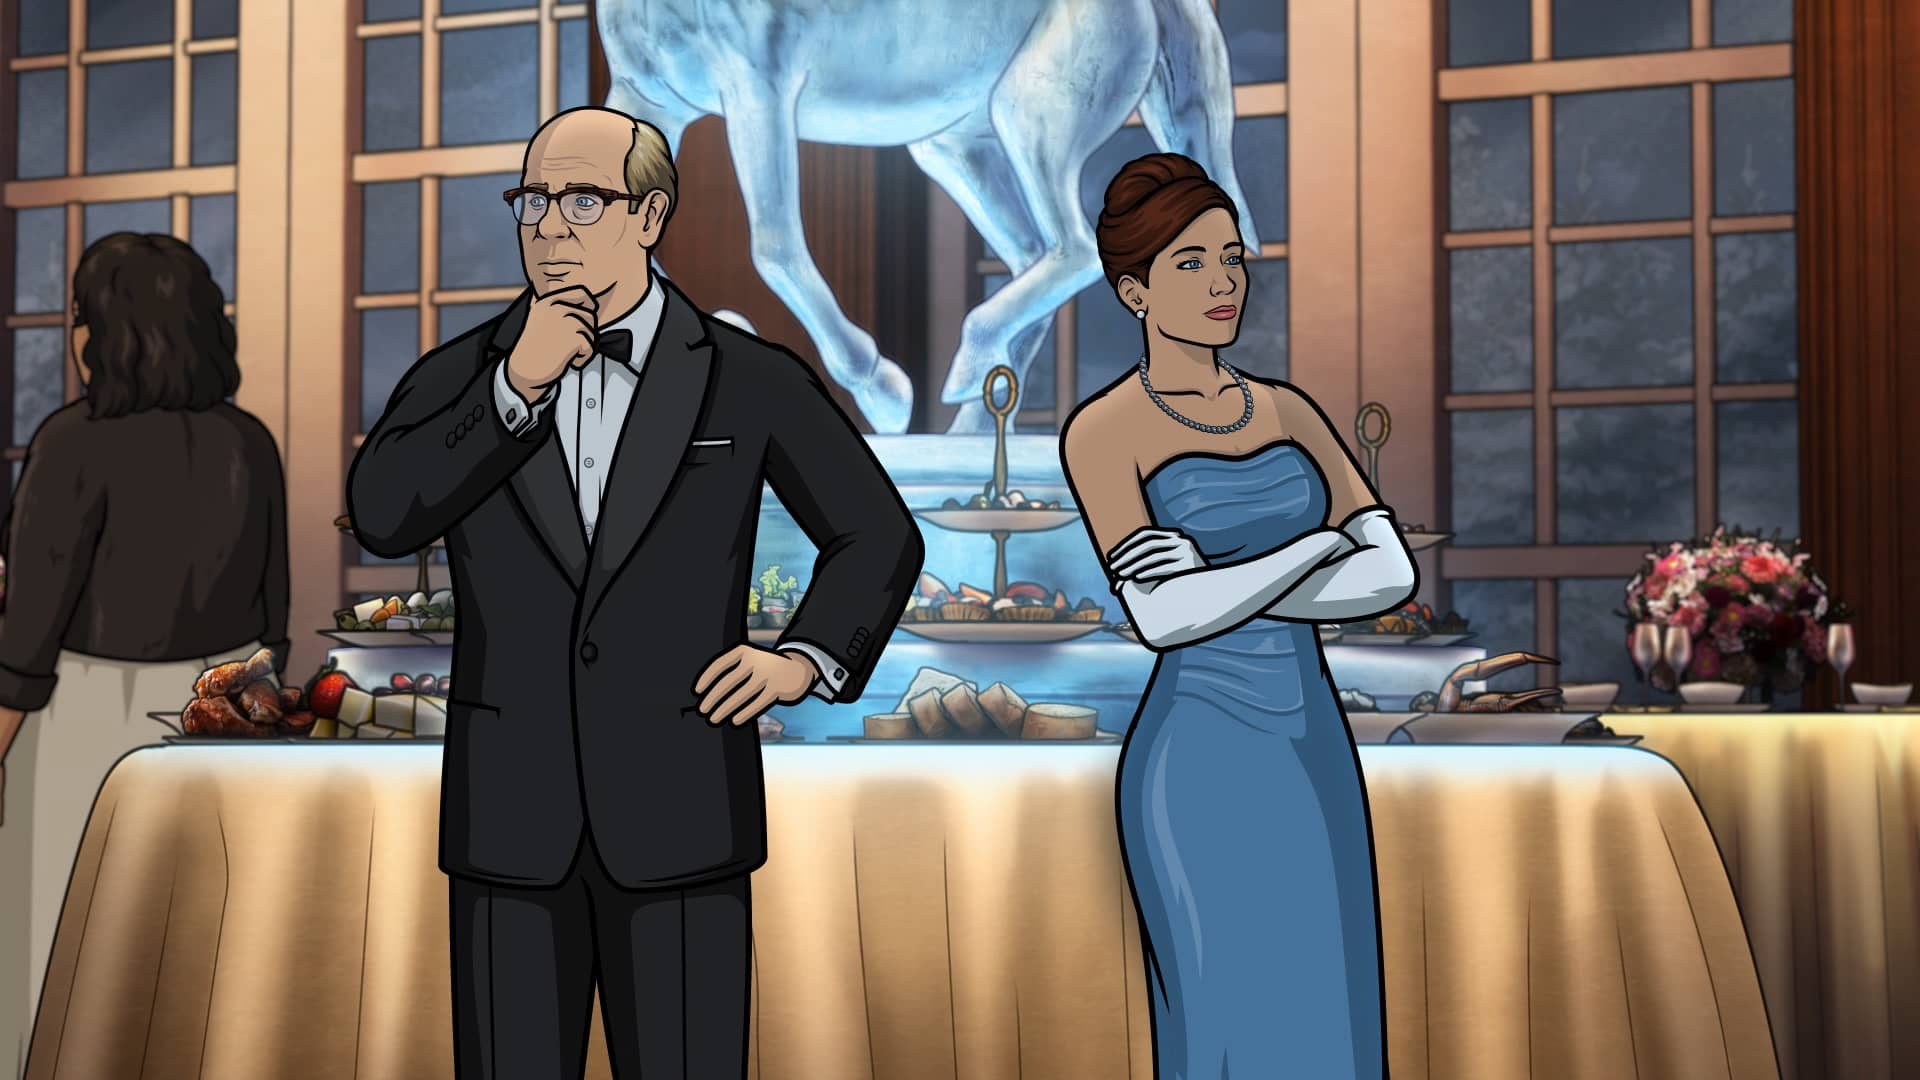 "ARCHER -- ""Caught Napping"" -- Season 11, Episode 7 (Airs October 21) Pictured: Robert (voice of Stephen Tobolowsky), Cheryl/Carol Tunt (voice of Judy Greer). CR: FXX"